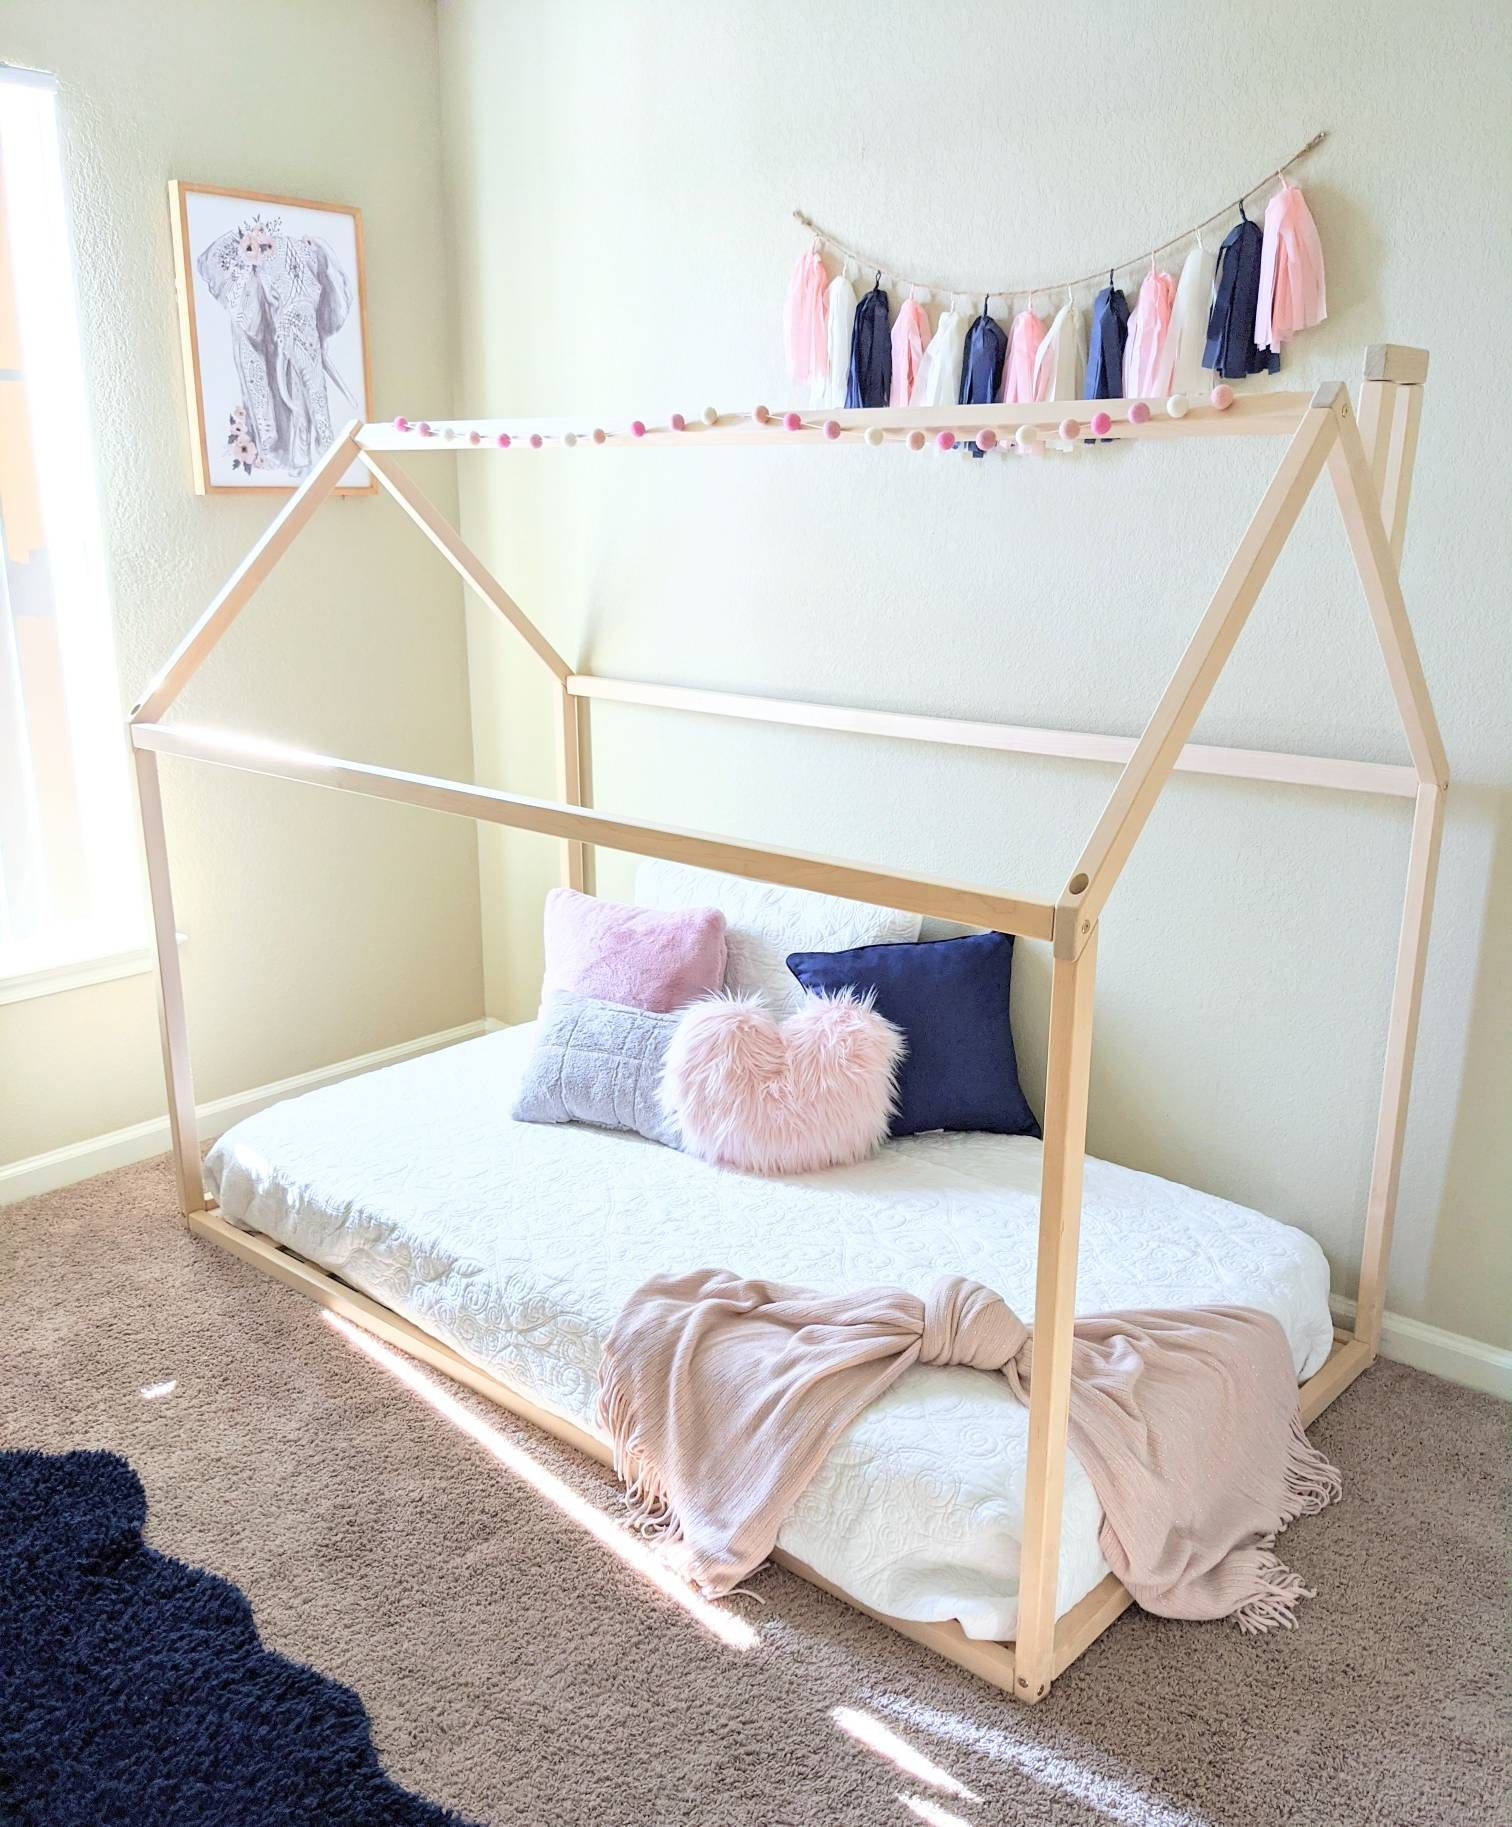 Toddler Bed House Bed Children Bed Wooden House Tent Bed Wood House Wood Nursery Kids Teepee Bed Wood Bed Frame Wood House Bed Kids Gift In 2020 Toddler Bed Frame Montessori